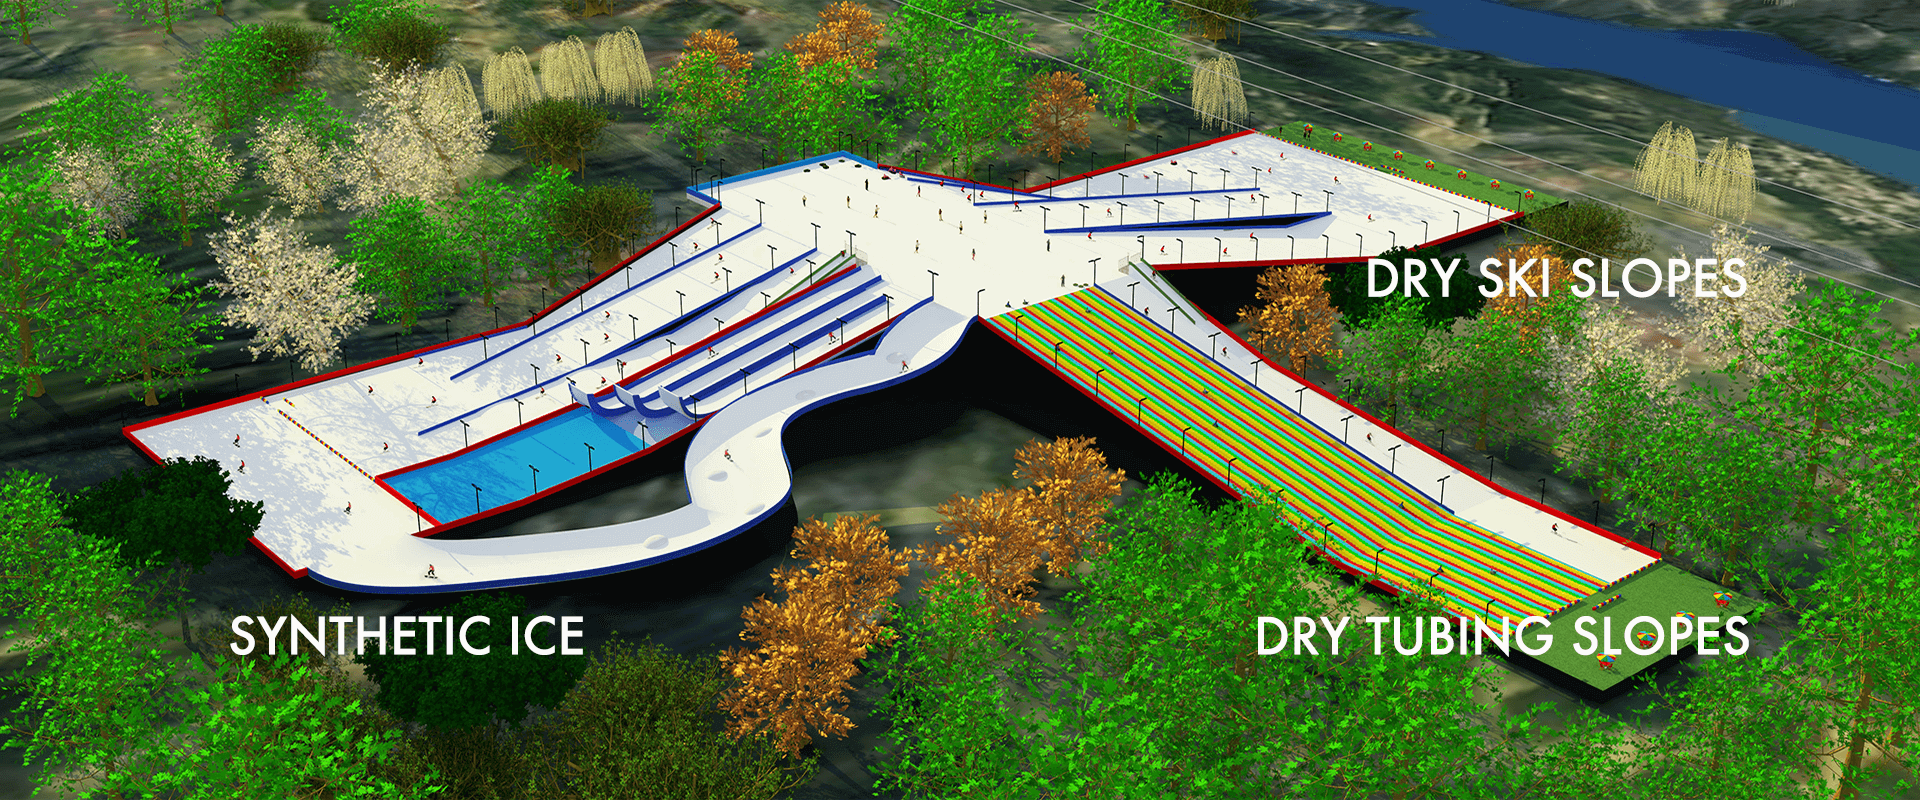 Synthetic ice & Dry ski slopes